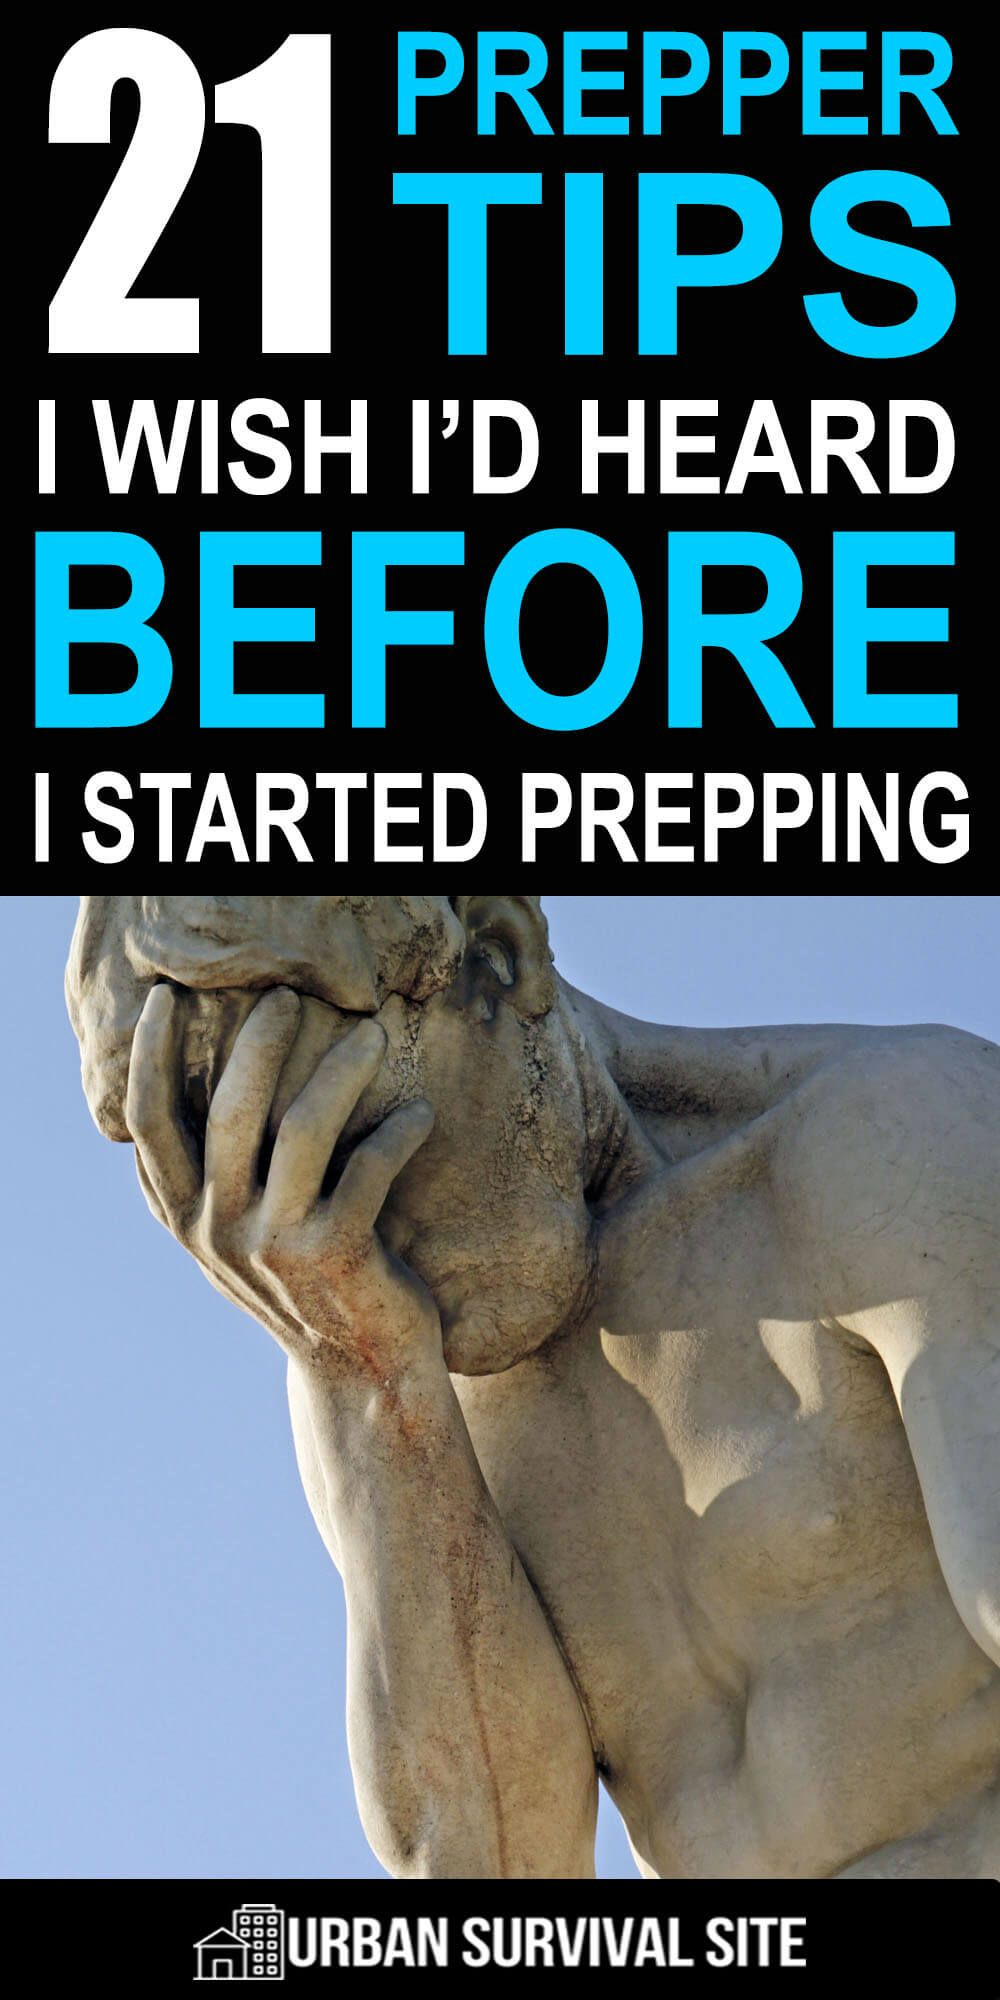 Don't waste your time repeating the same mistakes others have made. Instead, read this list of prepper tips I wish I'd heard before I started prepping. #urbansurvivalsite #prepper #prepping #survivaltips #preparedness